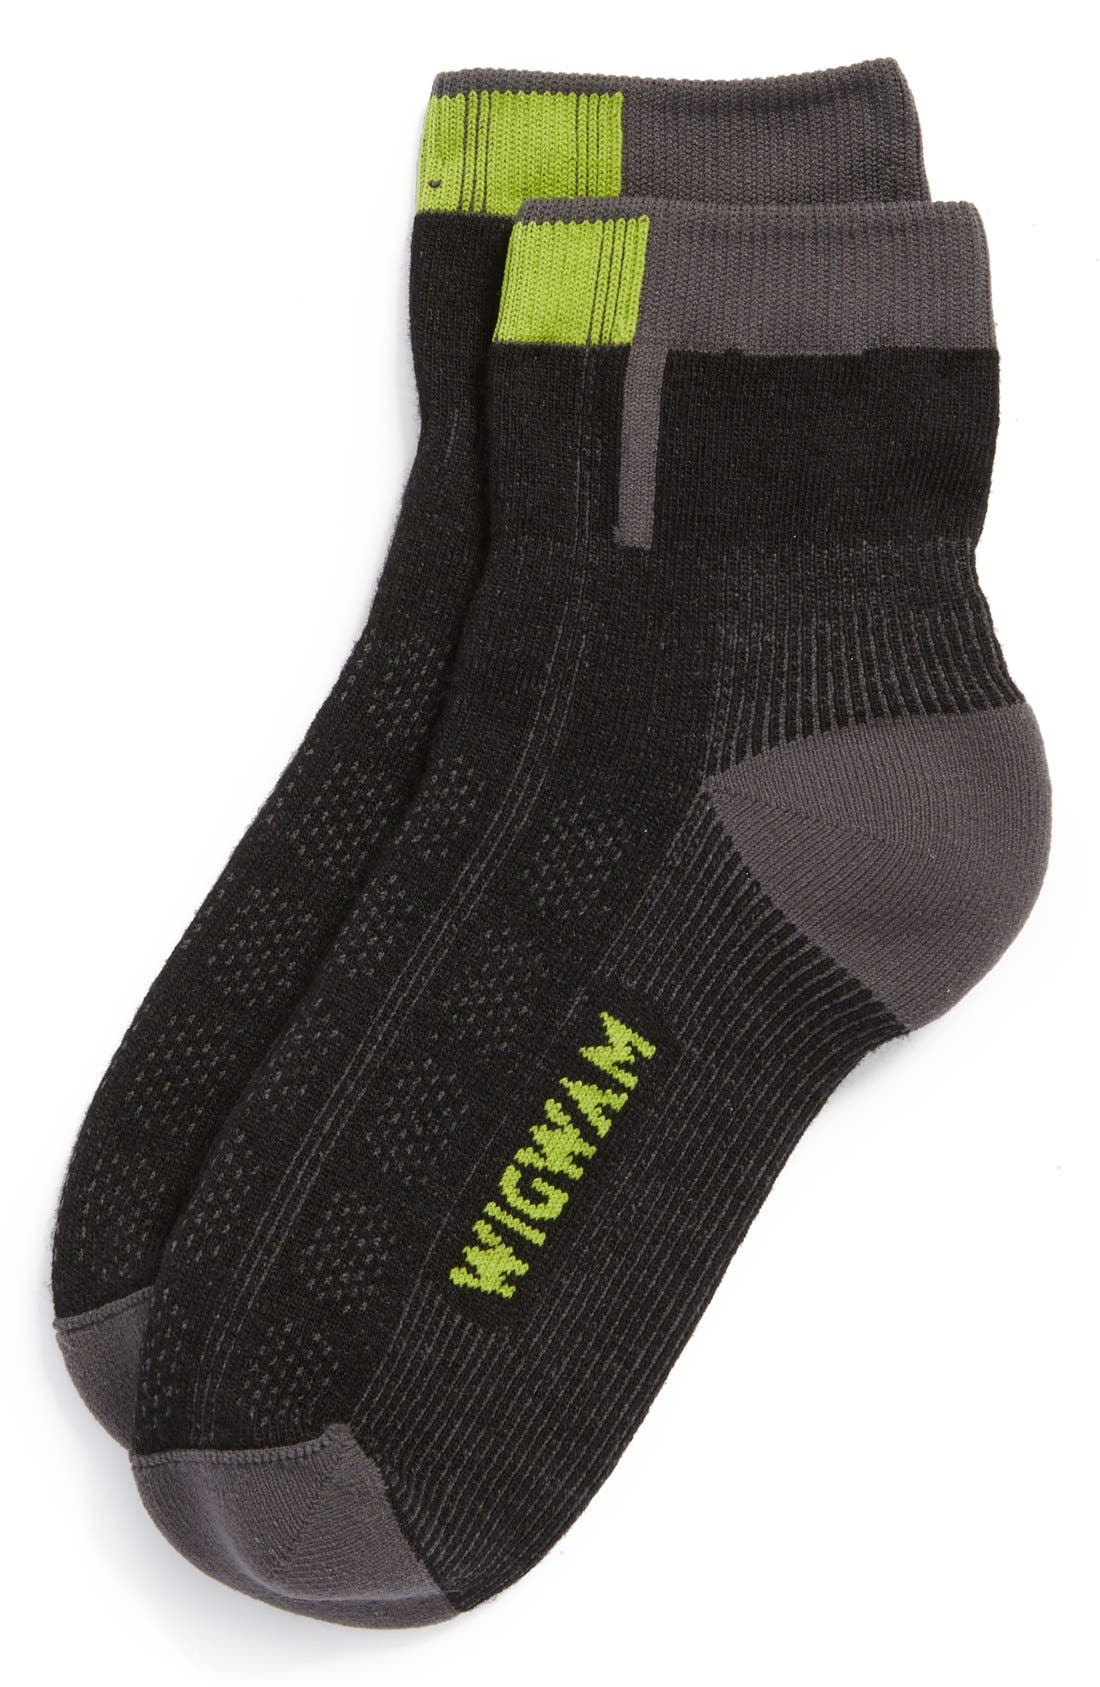 Alternate Image 1 Selected - Wigwam 'Rebel Fusion Quarter II' Quarter Socks (Men)